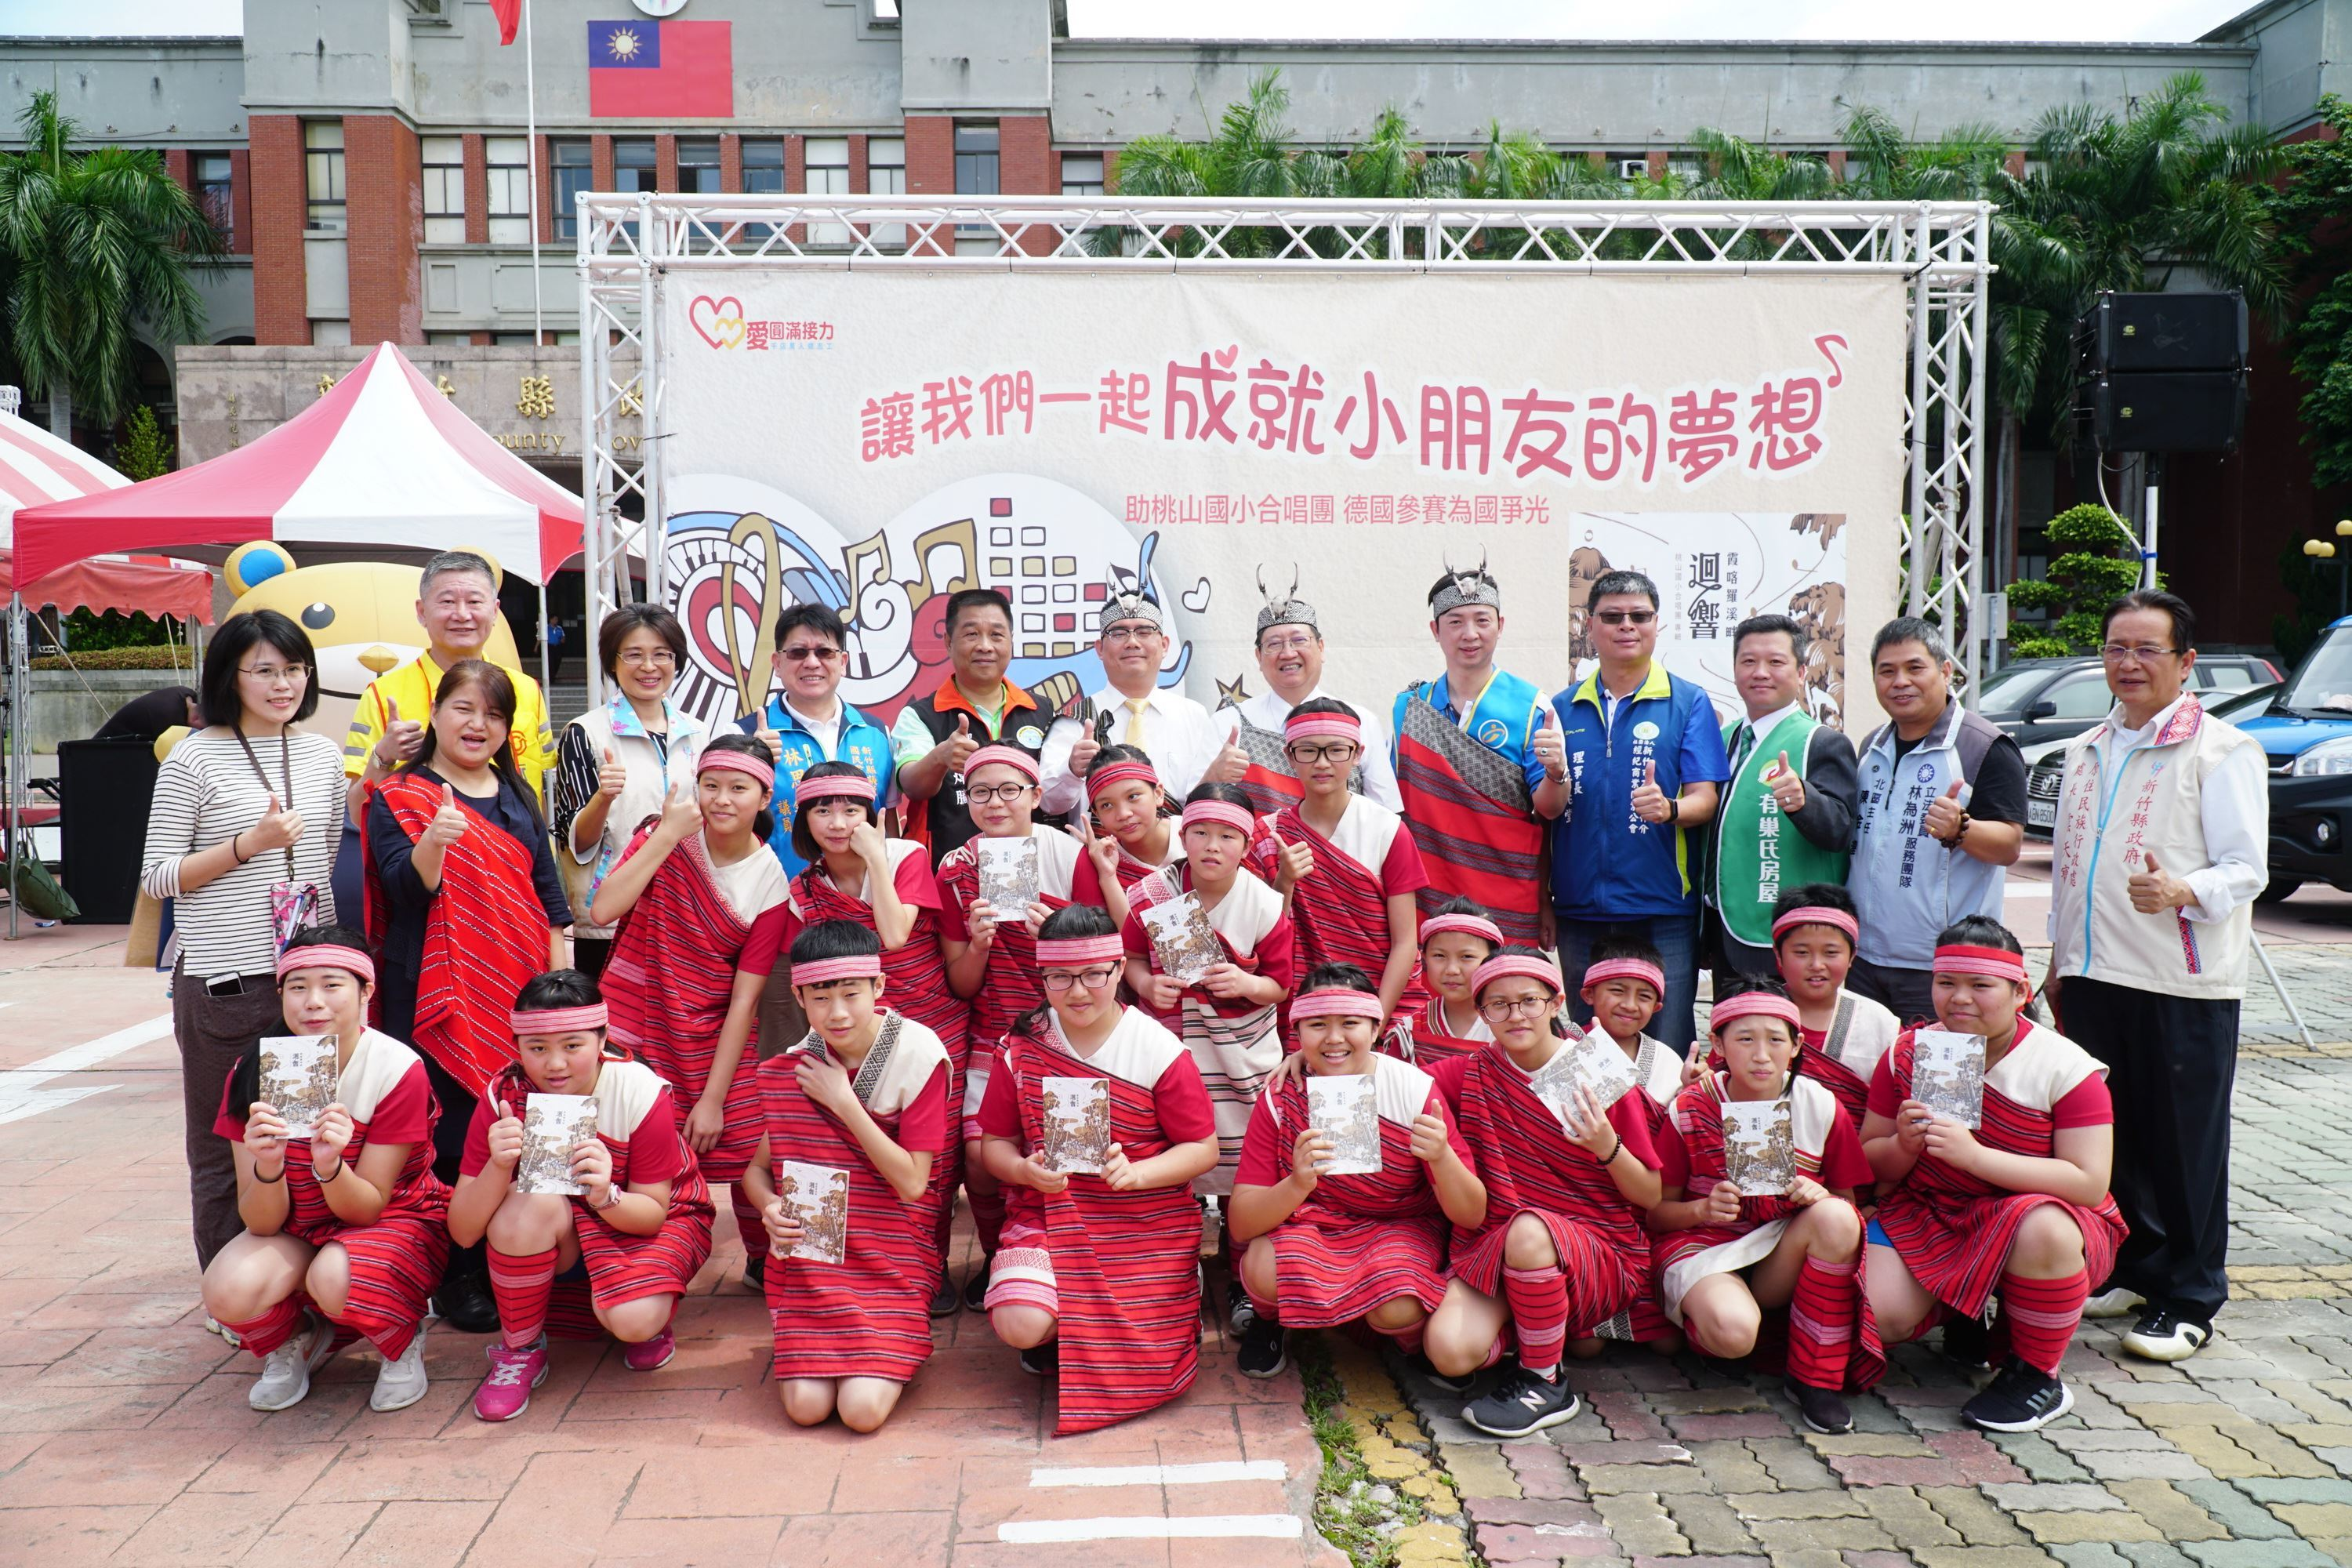 Local enterprise raises a fund to assist the Choir of Taoshan Elementary School in attending the international choral competition